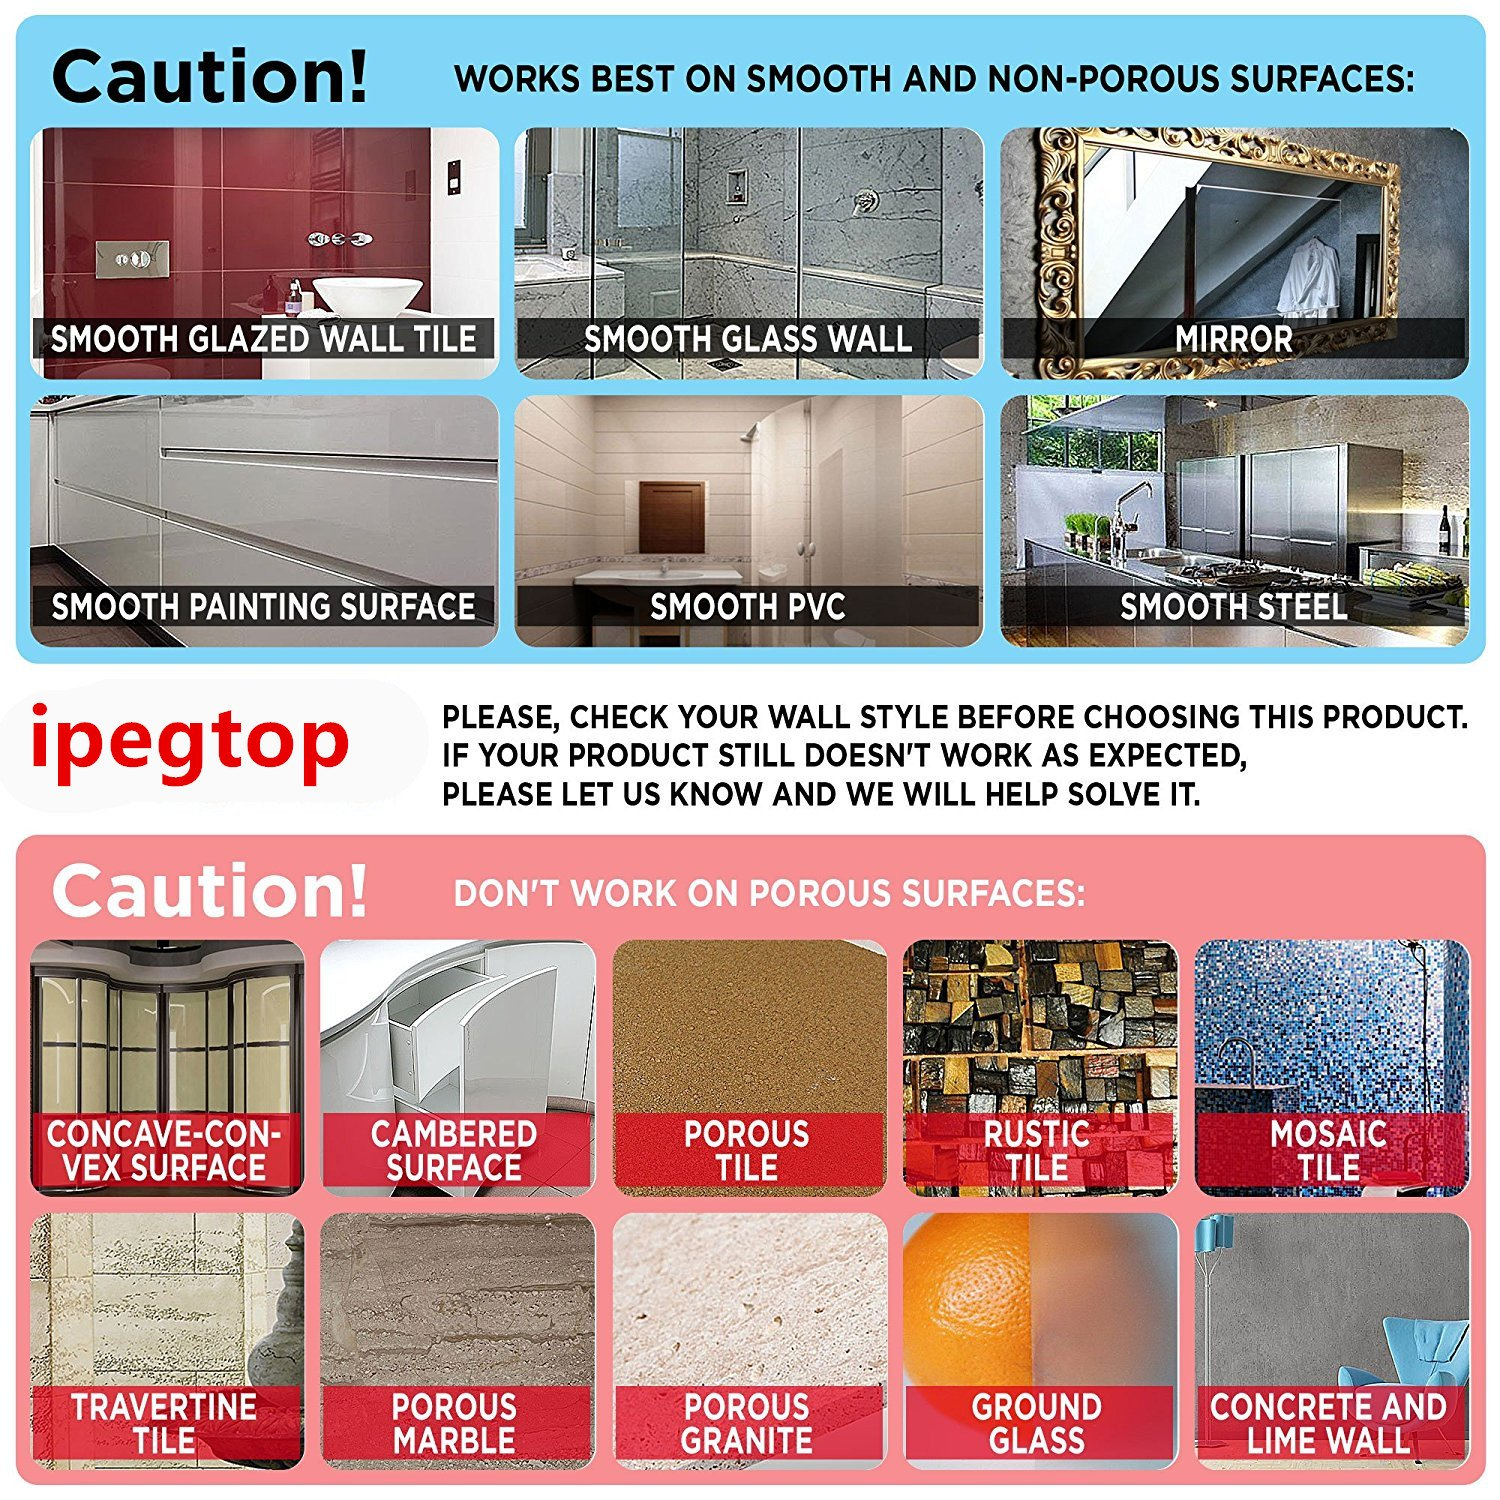 iPEGTOP Strong Suction Cup Hooks Damage Free Stainless Steel Hook for Towel, Robe, Loofah, Bags, Coat, Kitchen Tools and Bathroom Accessories, 3 Pack by iPEGTOP (Image #7)